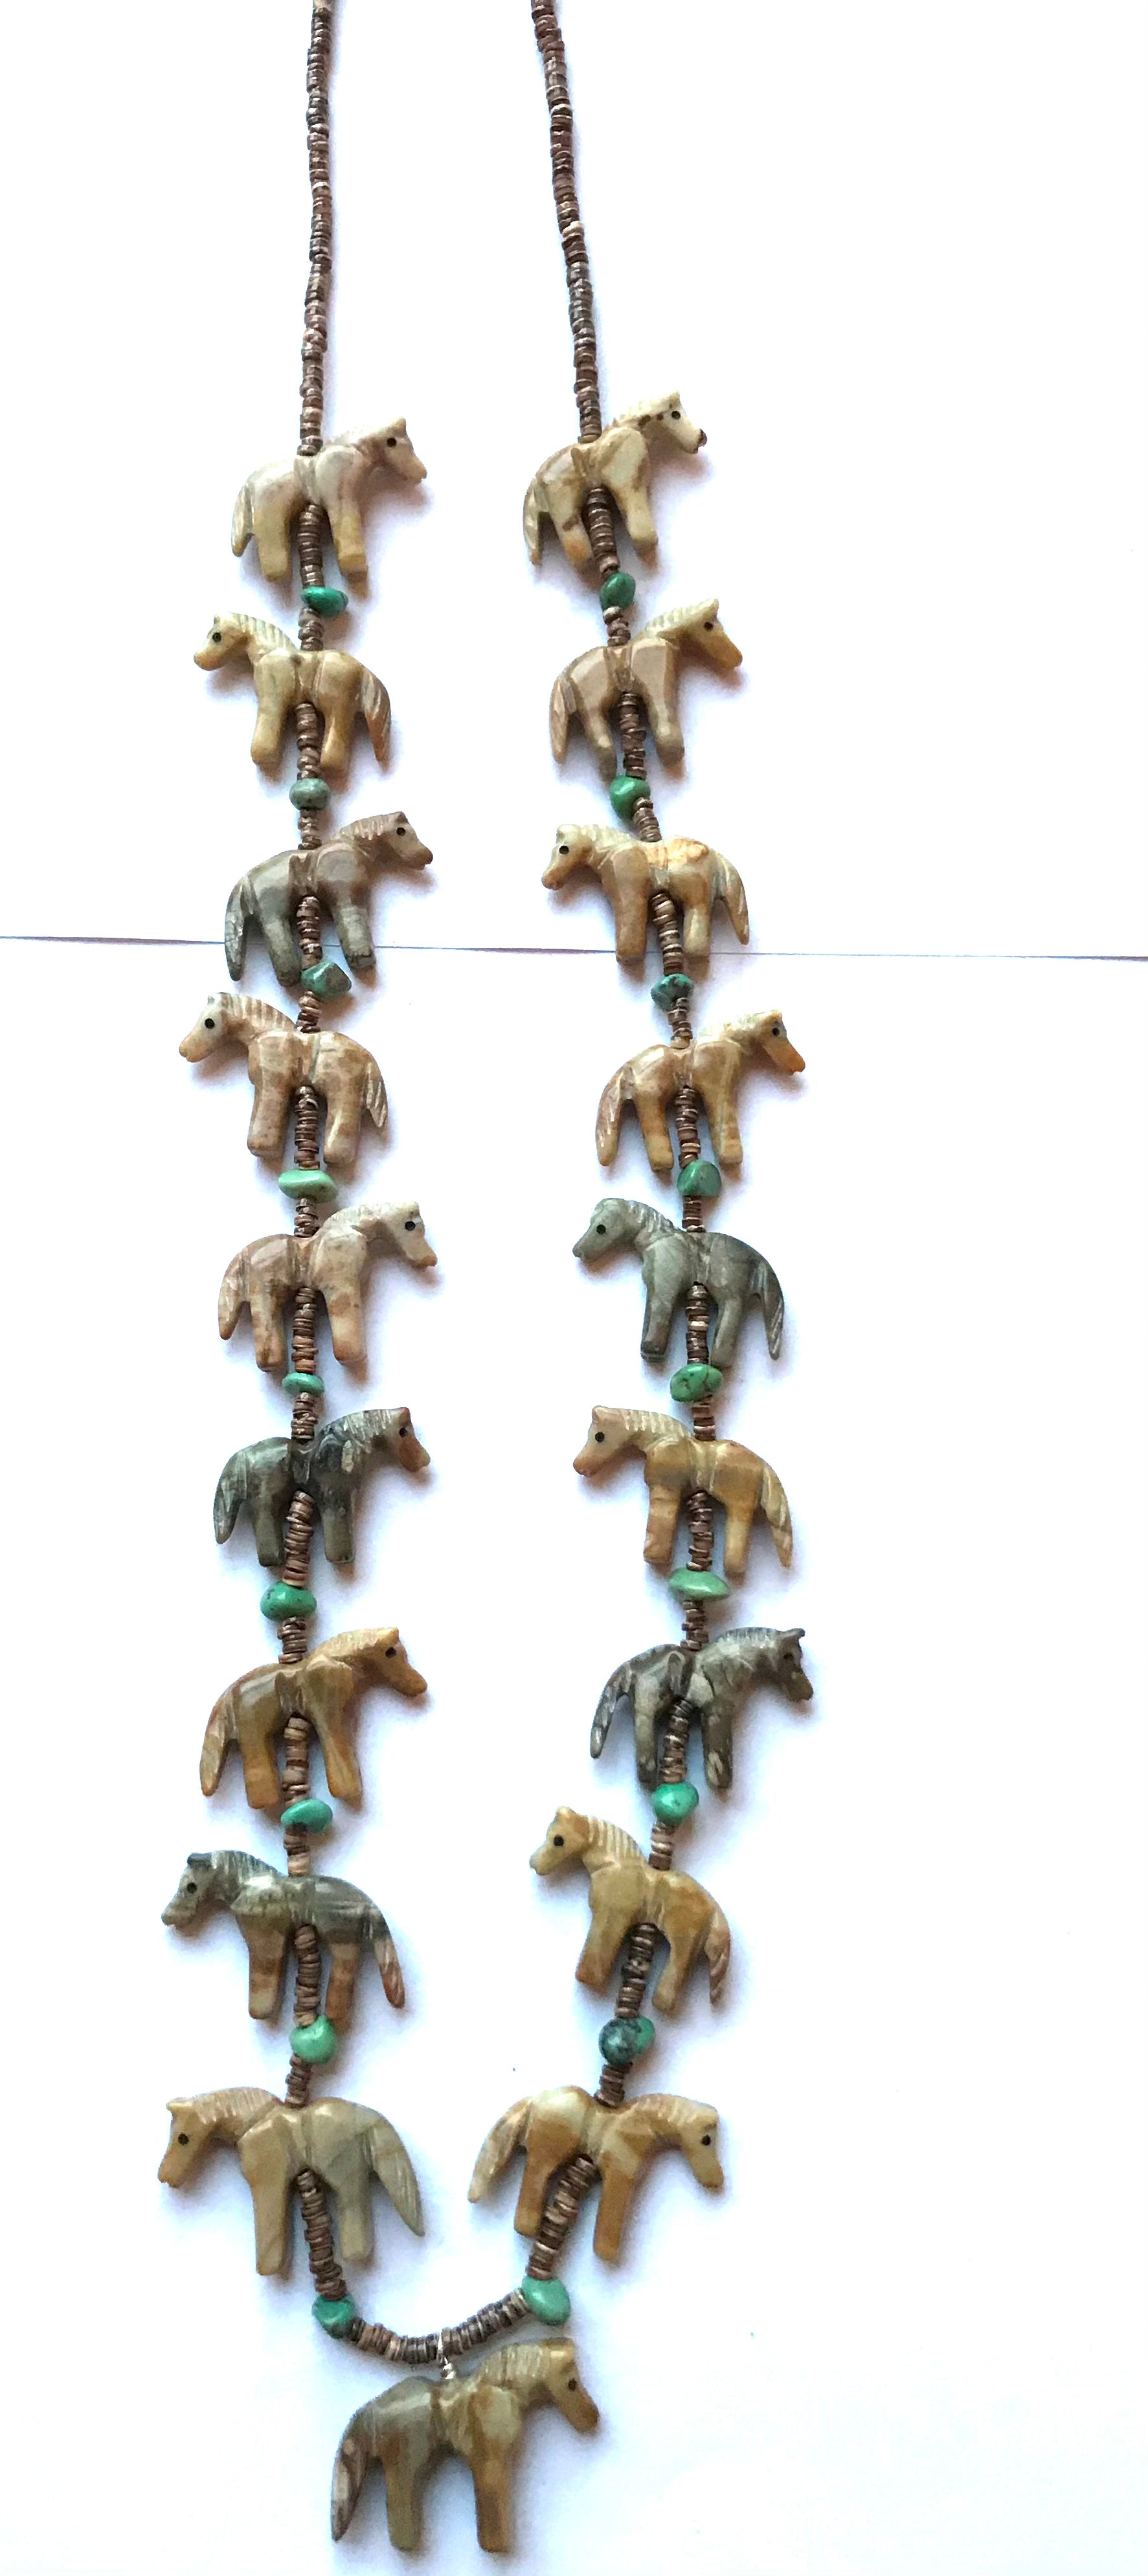 New super long horse power animal necklace